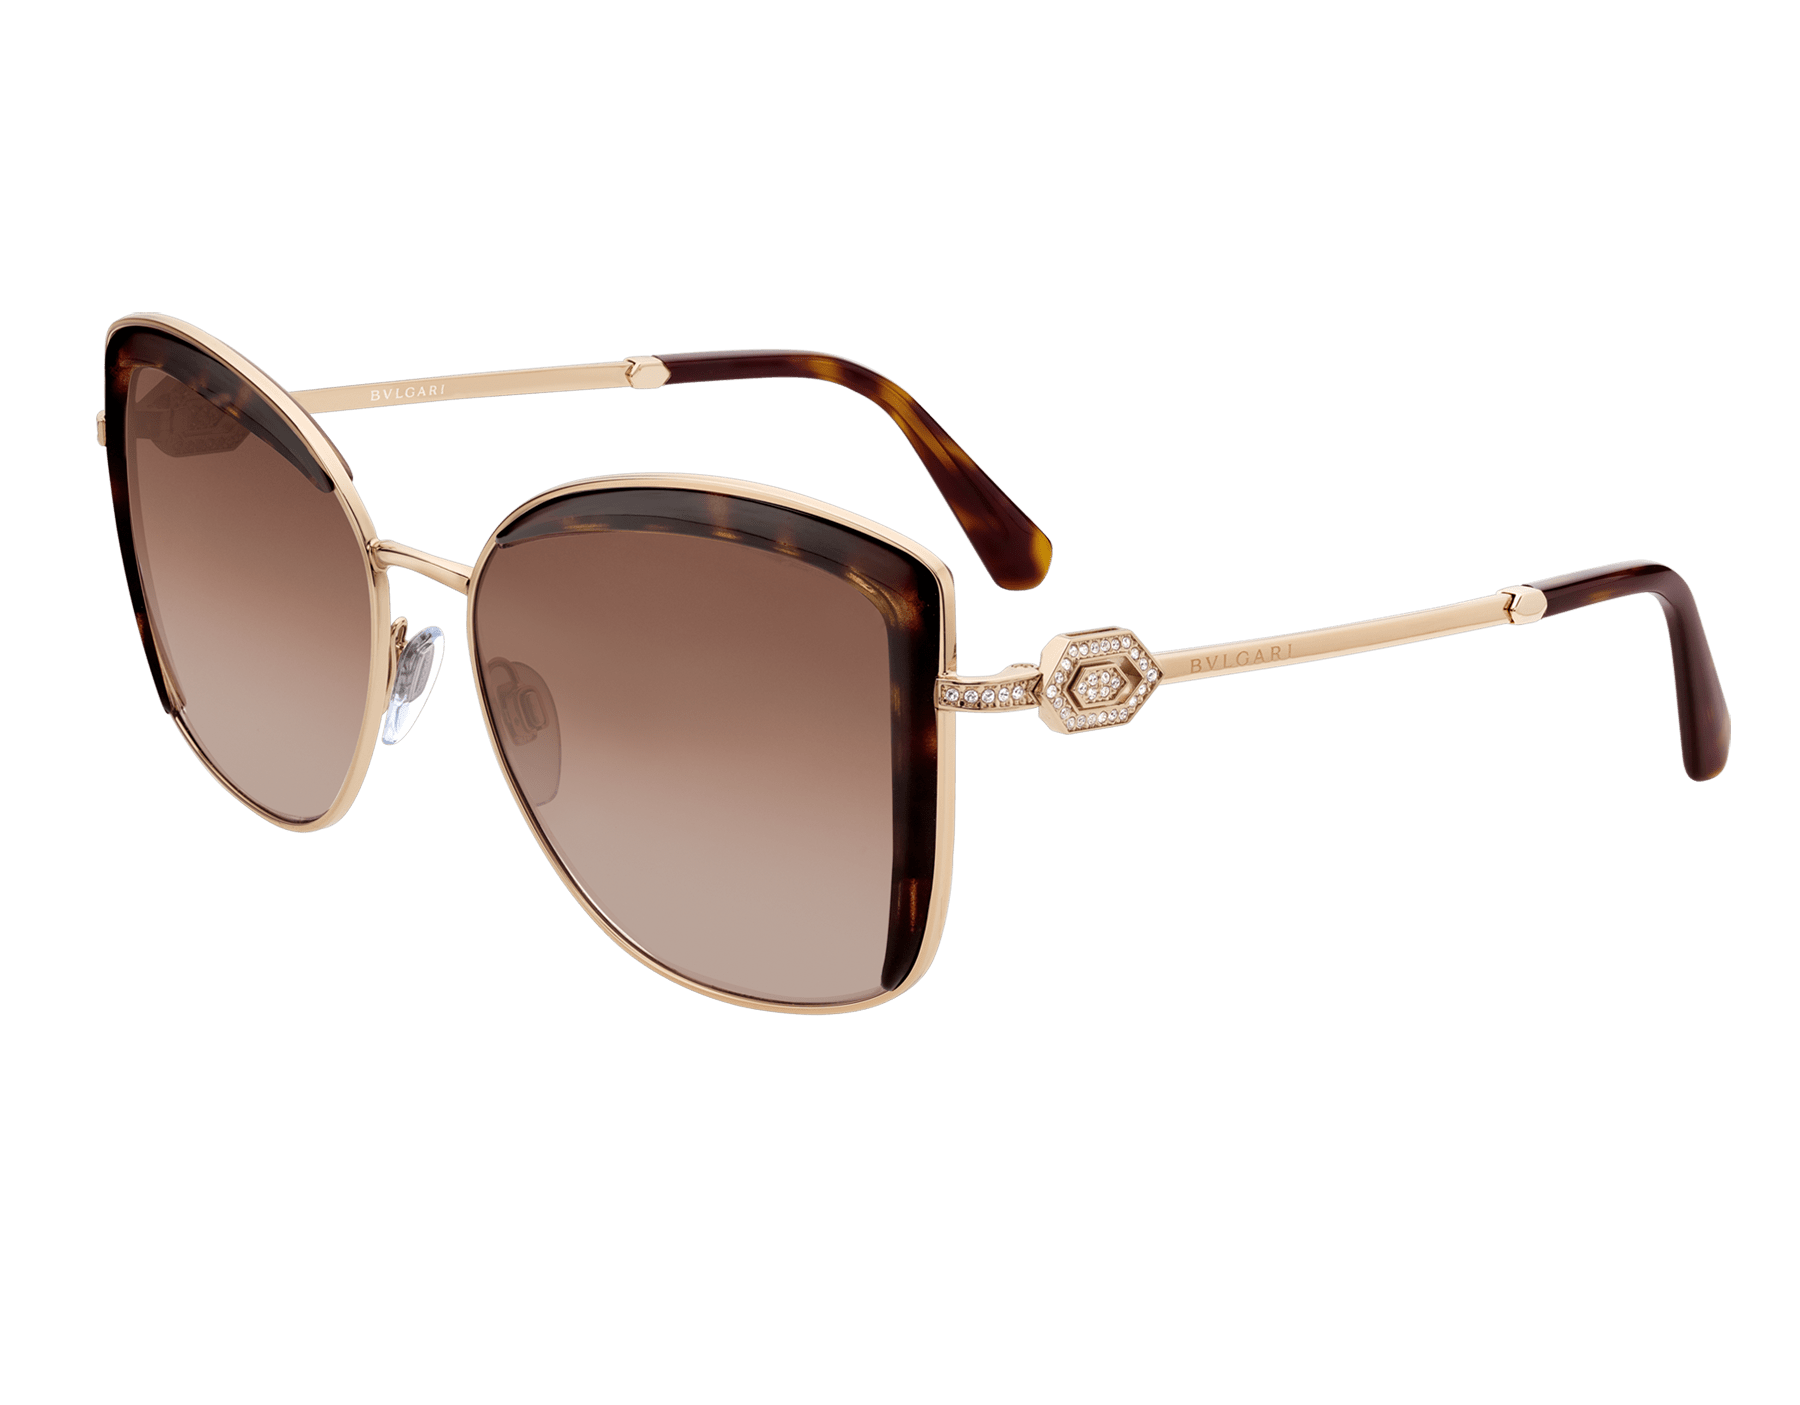 Bulgari Serpenti squared metal sunglasses with Serpenti openwork metal décor with crystals. 903904 image 1